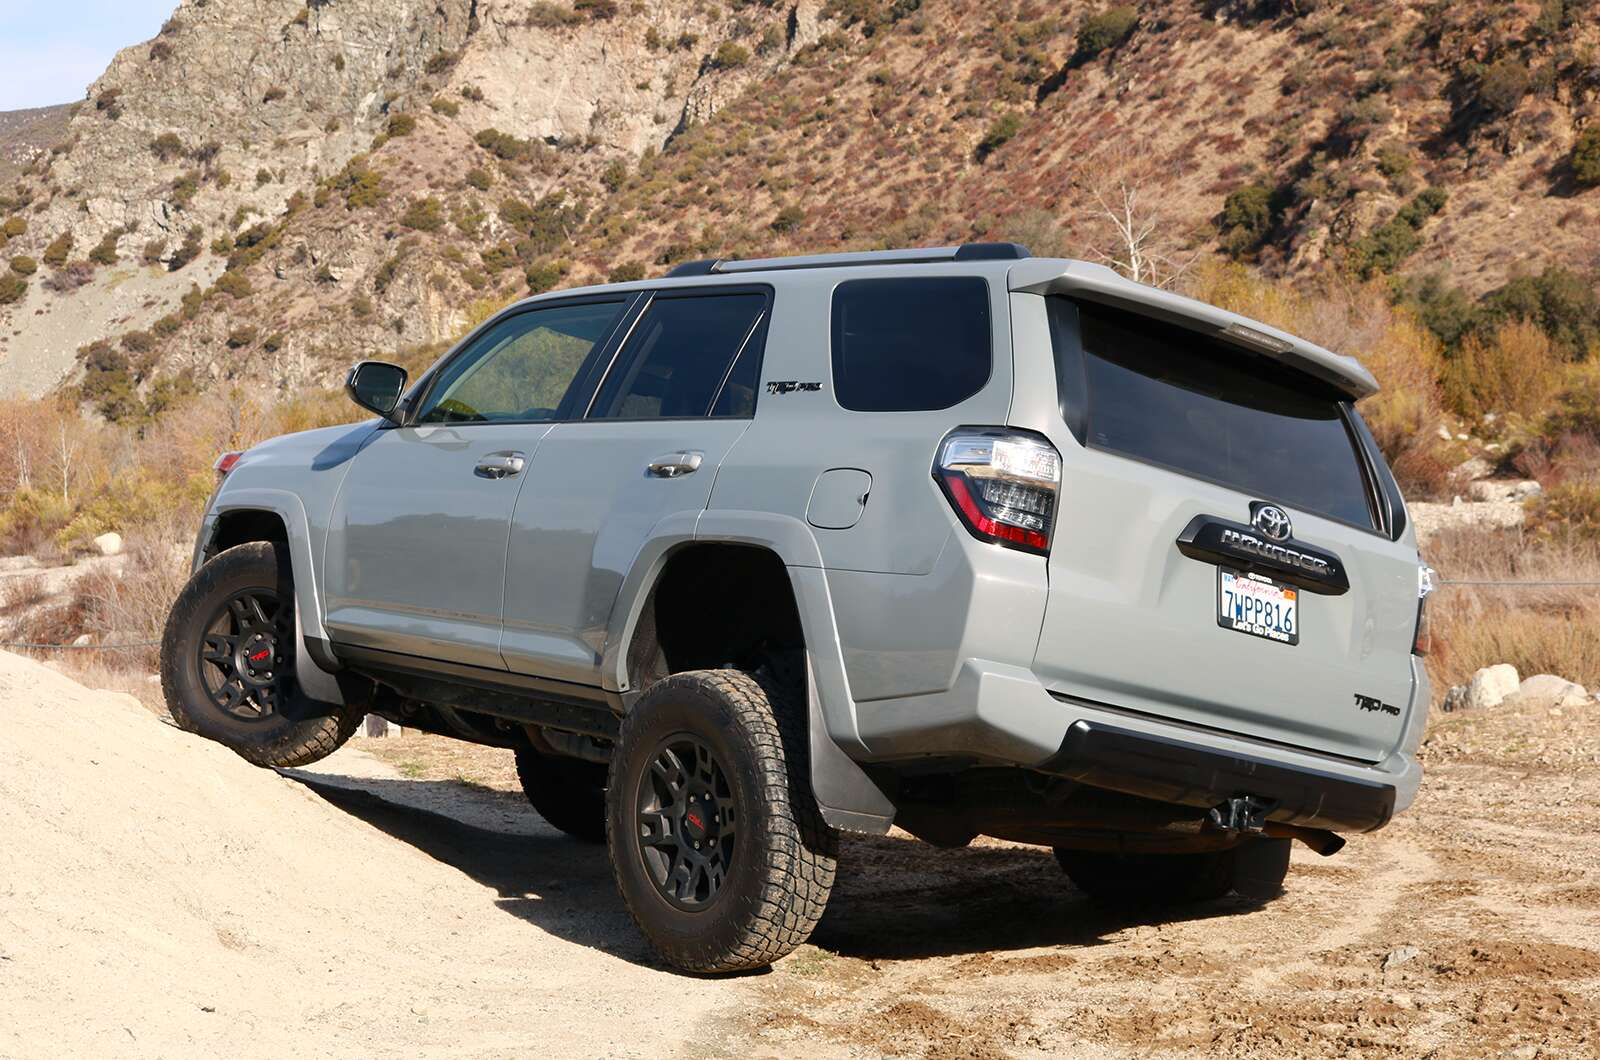 2017 toyota 4runner trd pro review old school off road goodness done right the drive. Black Bedroom Furniture Sets. Home Design Ideas